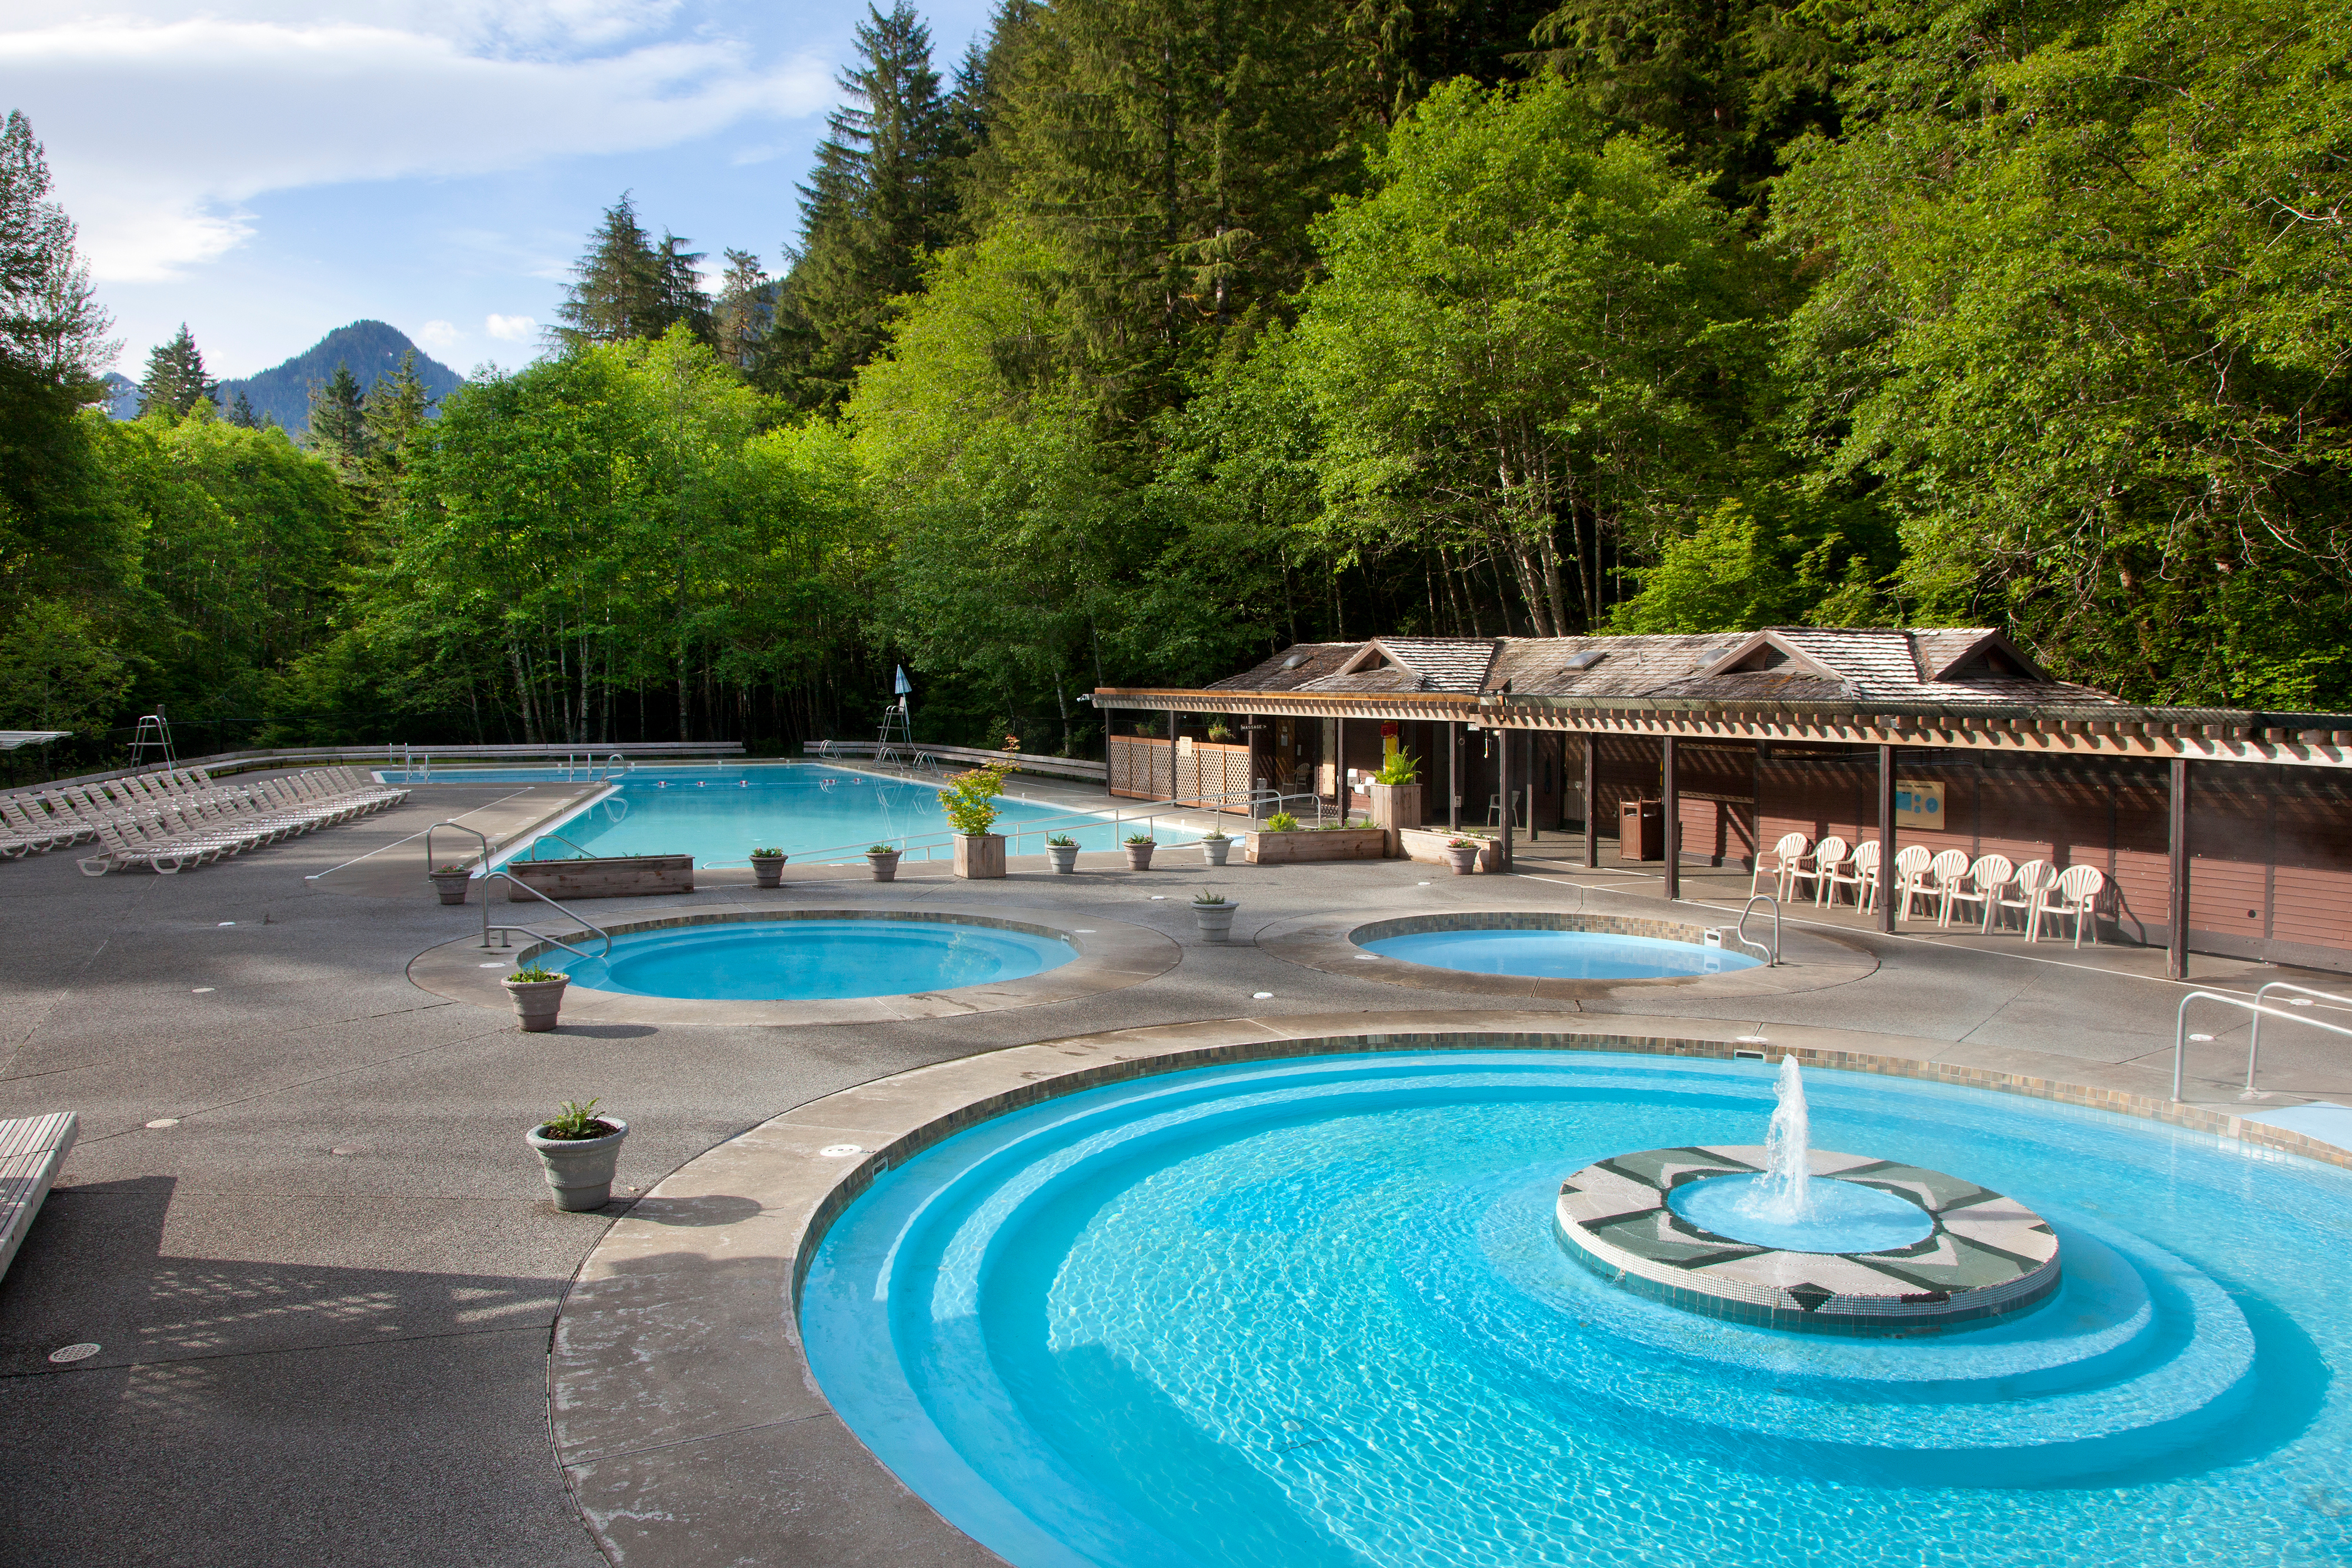 National Park Service solicits concession contract proposals for Sol Duc Hot Springs Resort